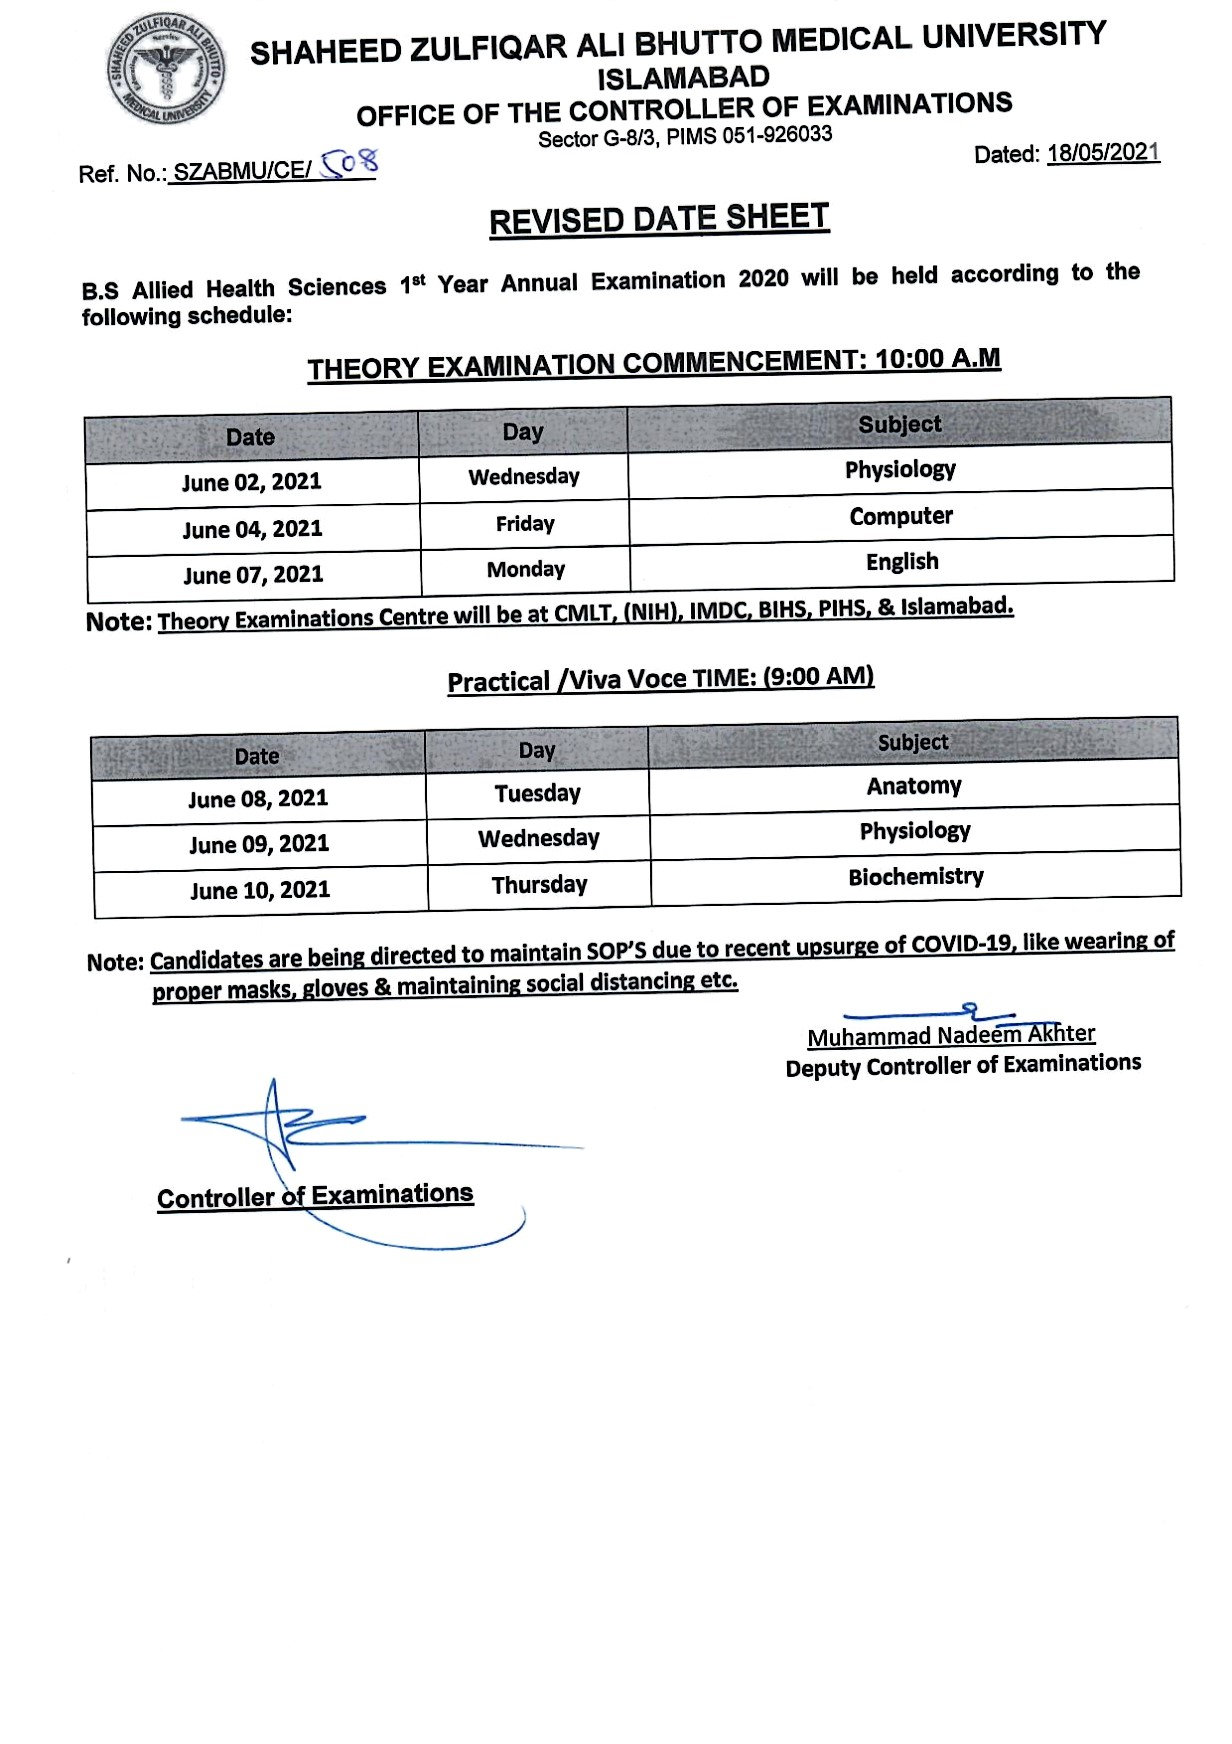 Revised Date Sheet - BS AHS 1st Year Annual Examination 2020